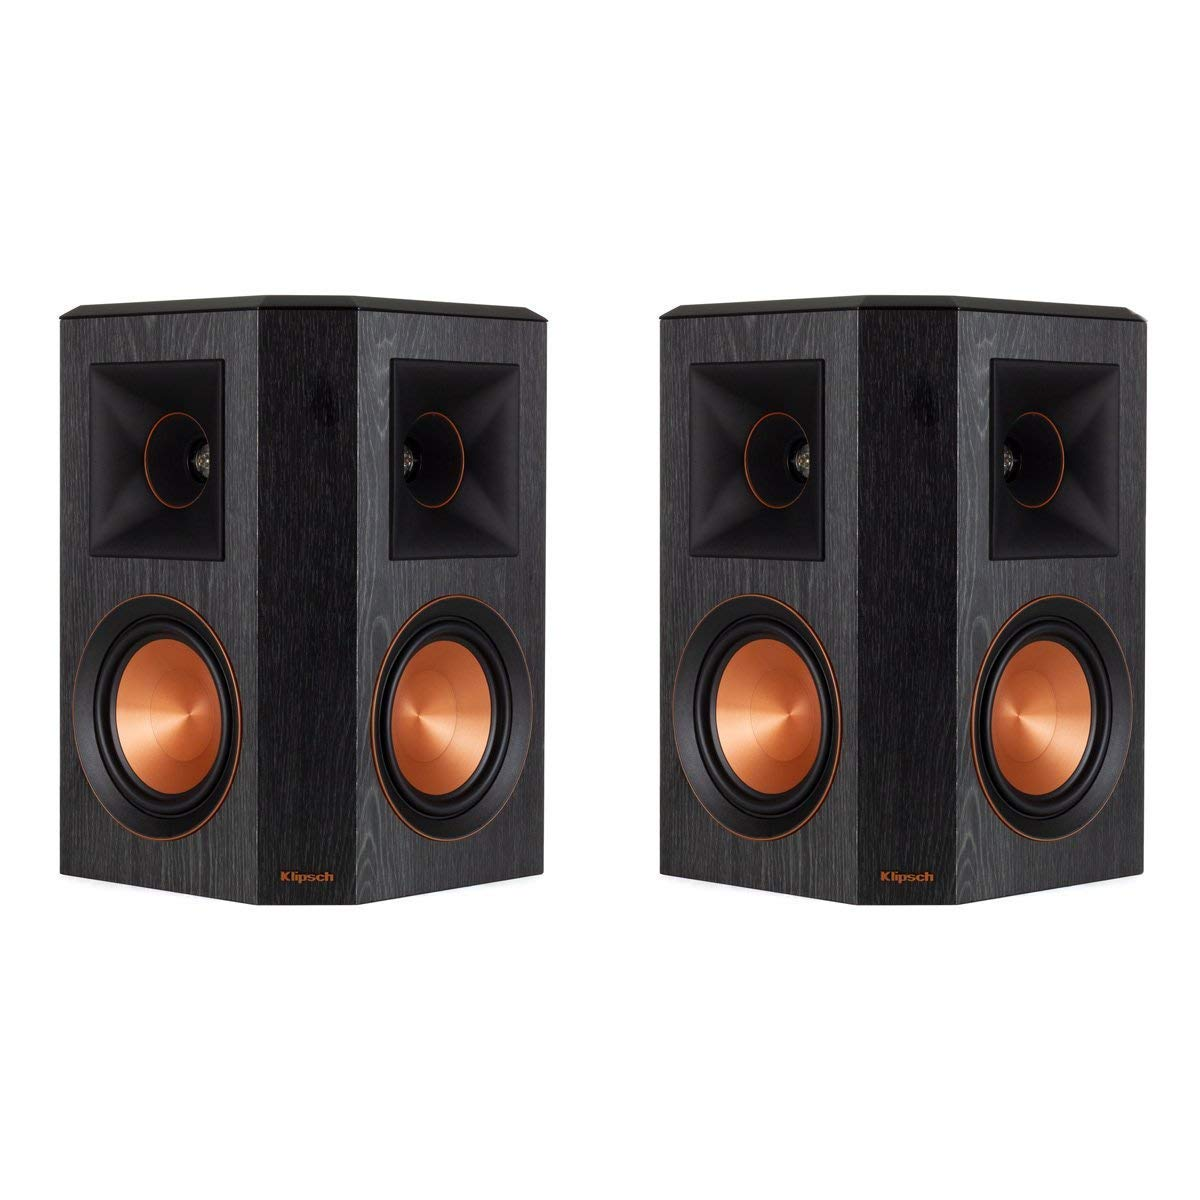 Klipsch Surround 5.1 Channel Set of 2 Home Theater Speaker System Ebony (RP-502S)